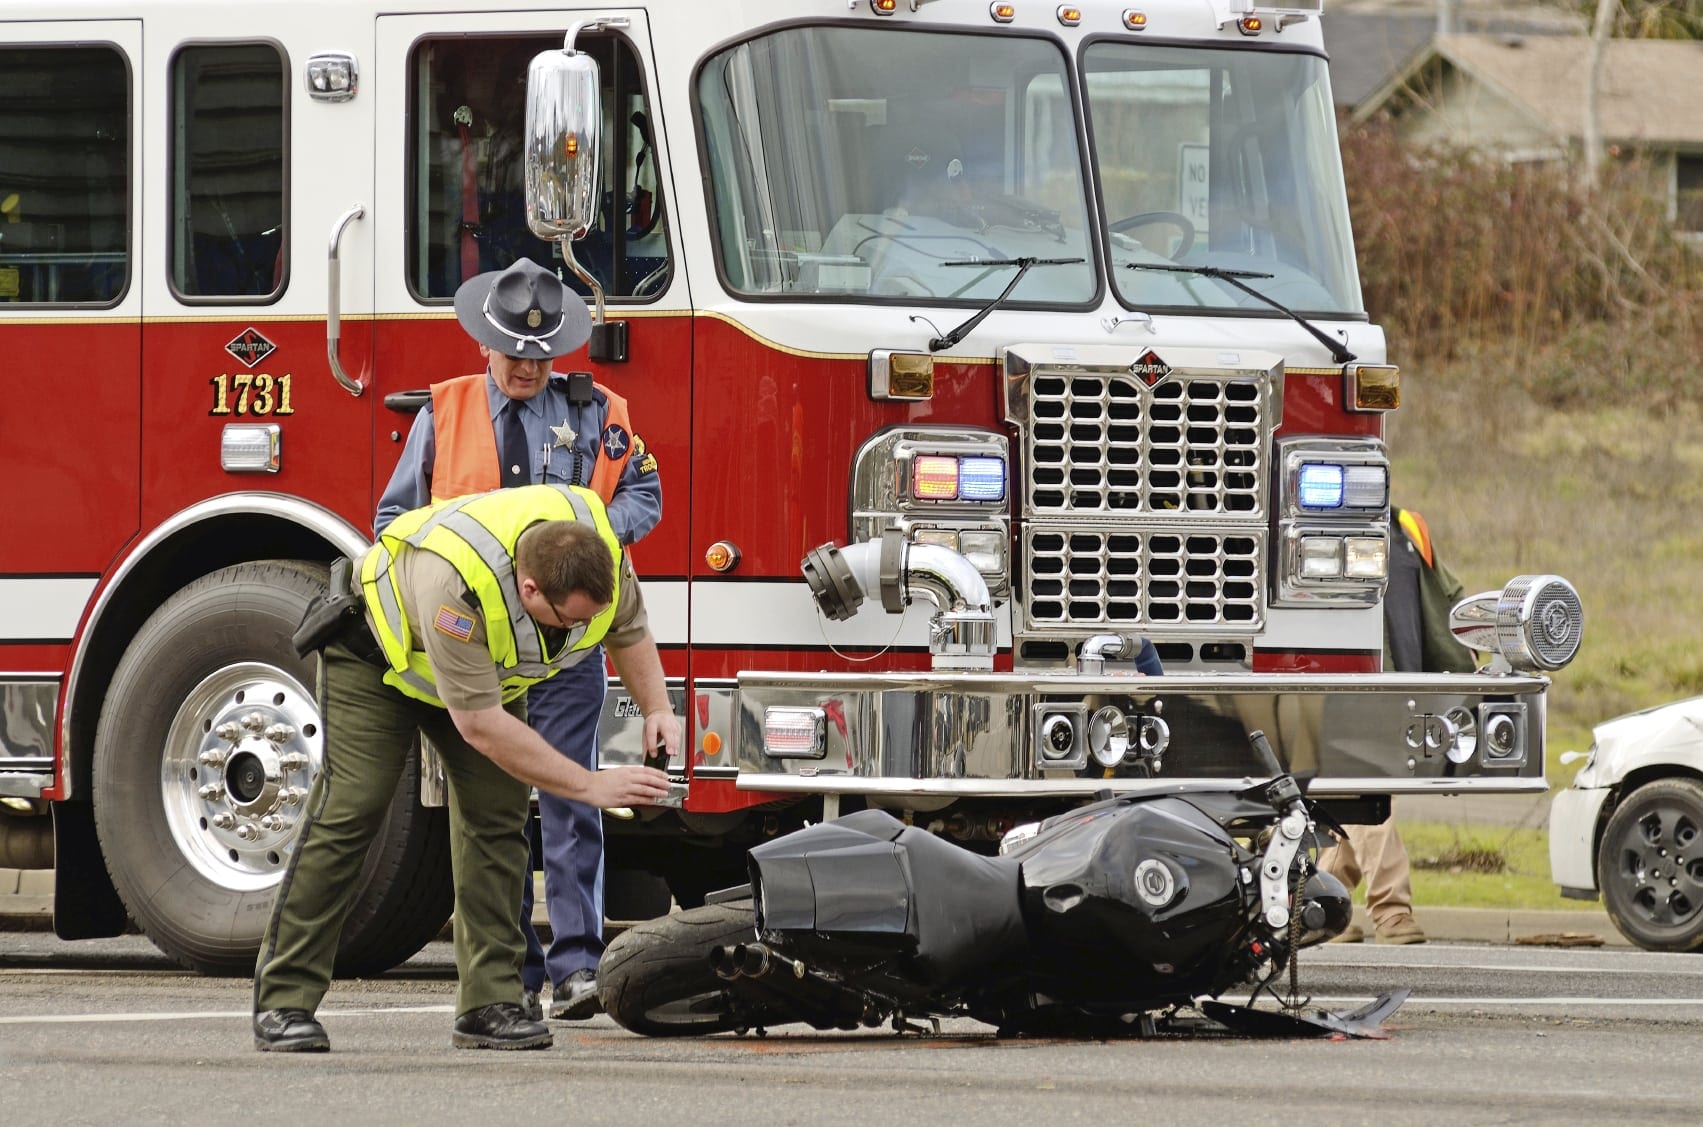 Scene Of A Violent Motorcycle Accident Stock Photo